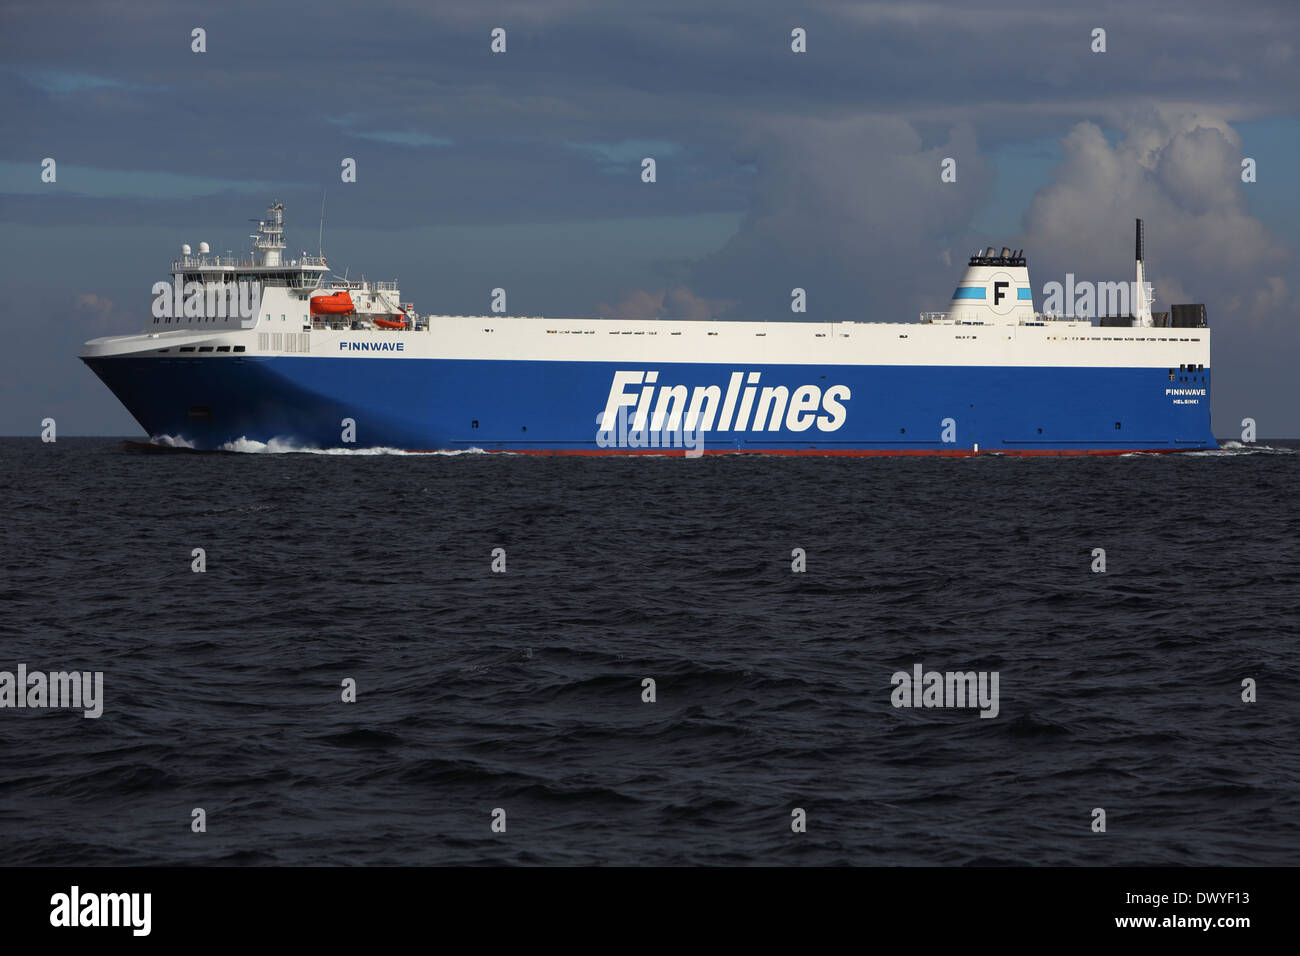 Wismar, Germany, the ferryboat Finnlines on the Baltic Sea - Stock Image